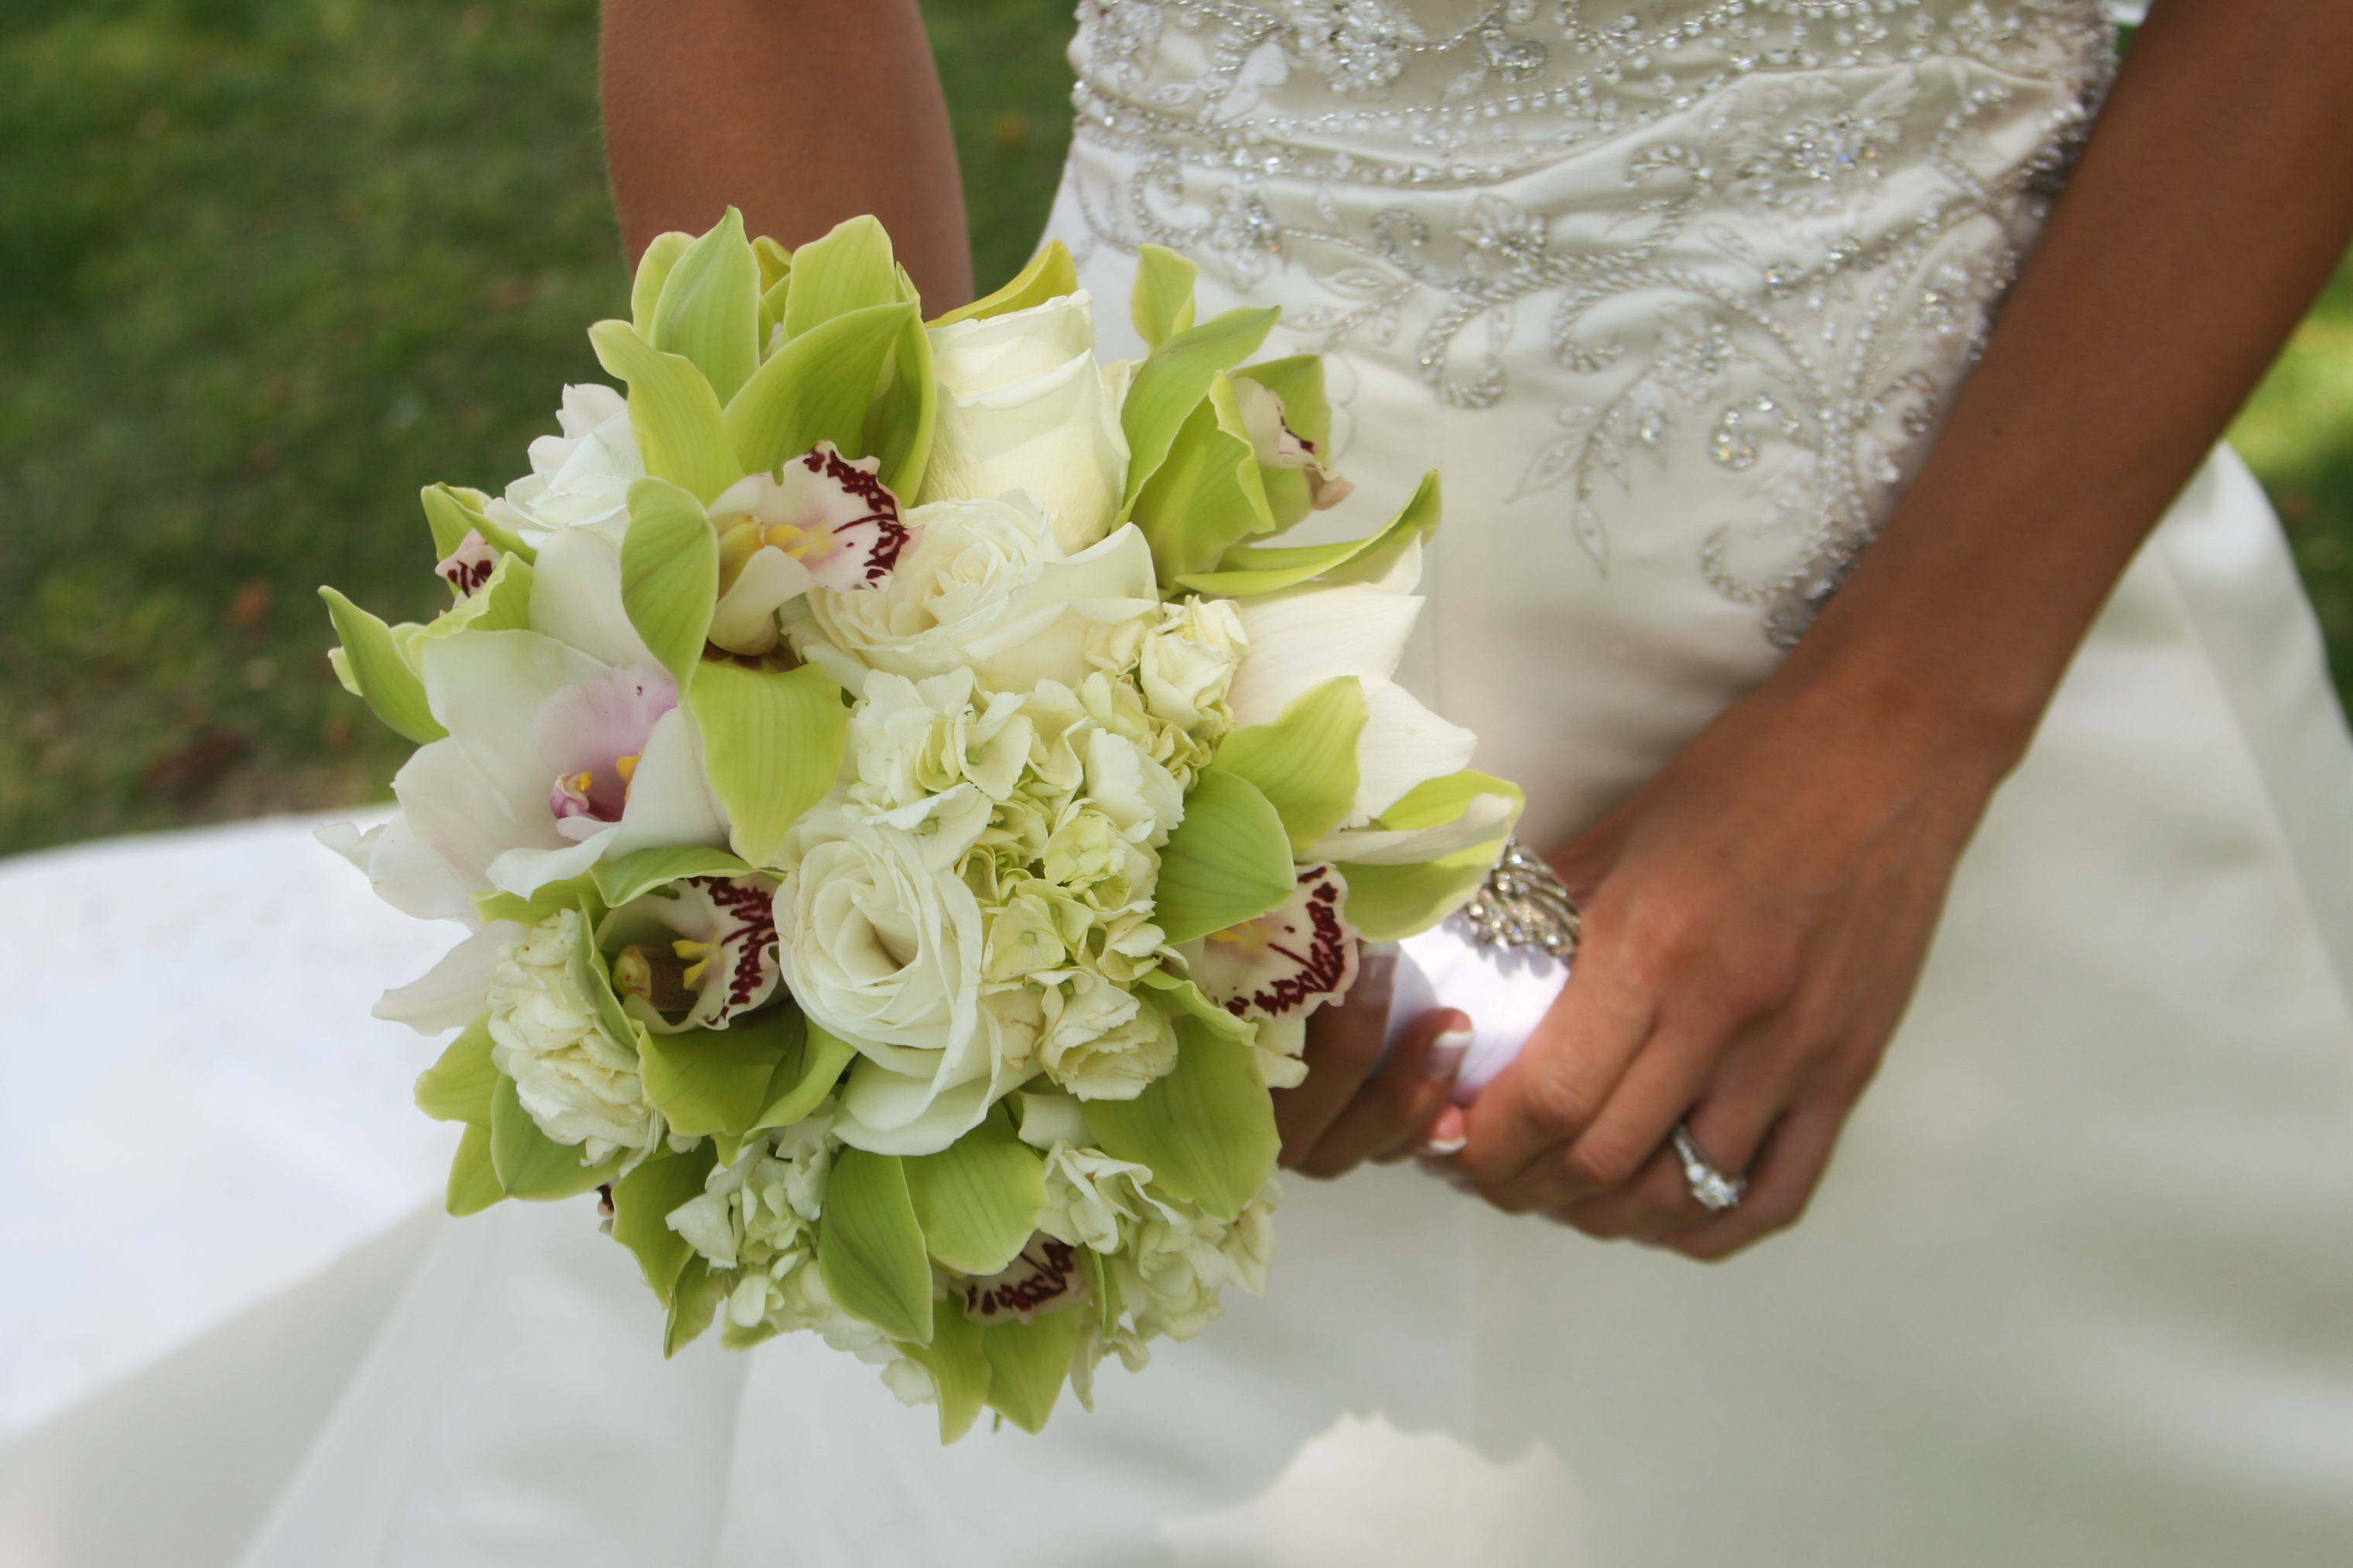 Ceremony, Reception, Flowers & Decor, Bridesmaids, Bridesmaids Dresses, Fashion, white, yellow, orange, pink, red, purple, blue, green, brown, black, silver, gold, Ceremony Flowers, Bridesmaid Bouquets, Centerpieces, Flowers, Bouquets, Florals, Exquisite blooms, Flower Wedding Dresses